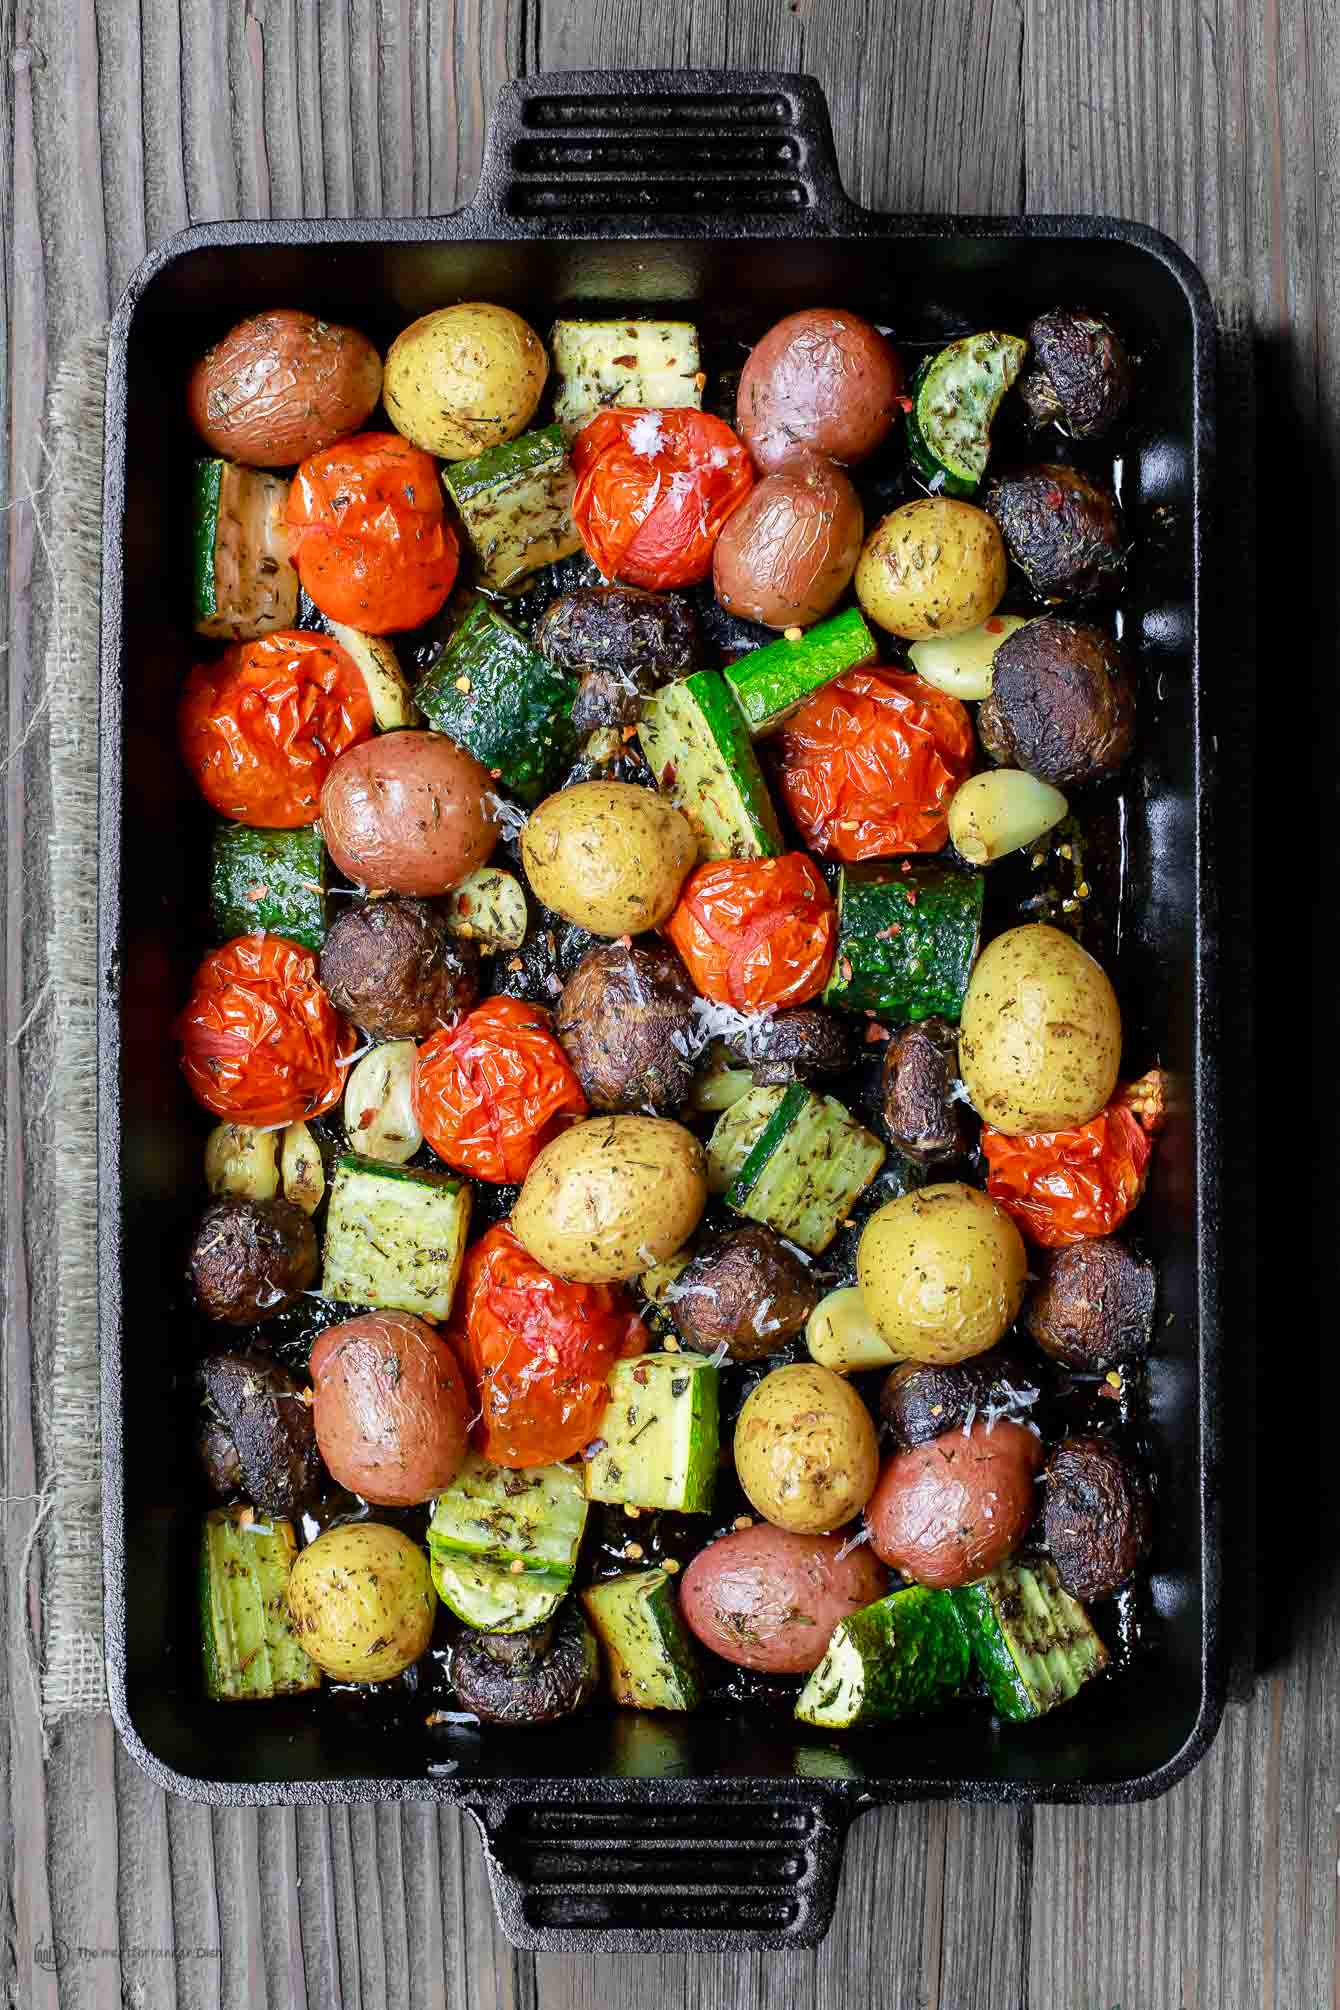 Oven Roasted Vegetables including zucchini, tomatoes, potatoes and mushrooms